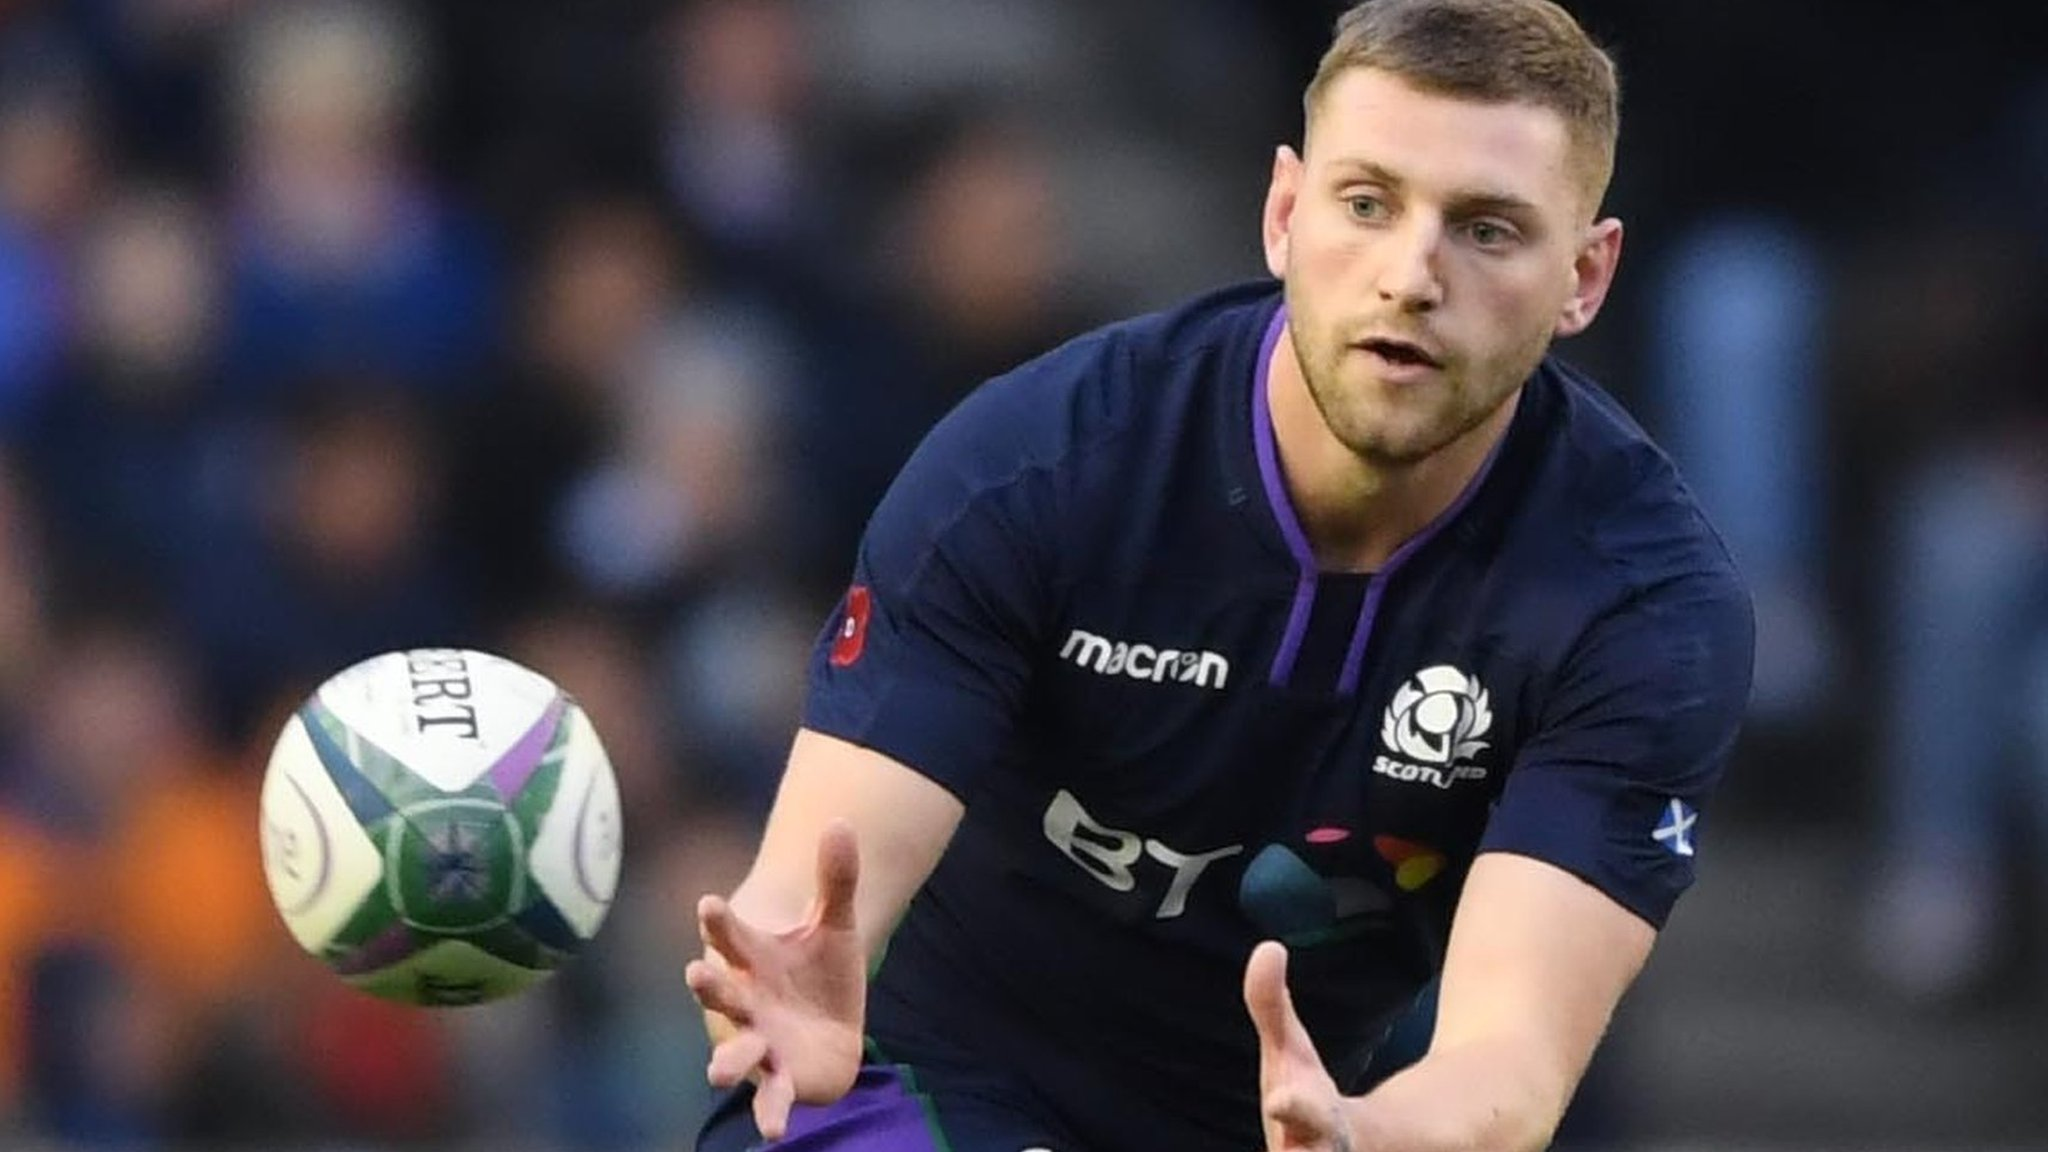 Hastings not 'the enemy' in Scotland fly-half rivalry - Russell